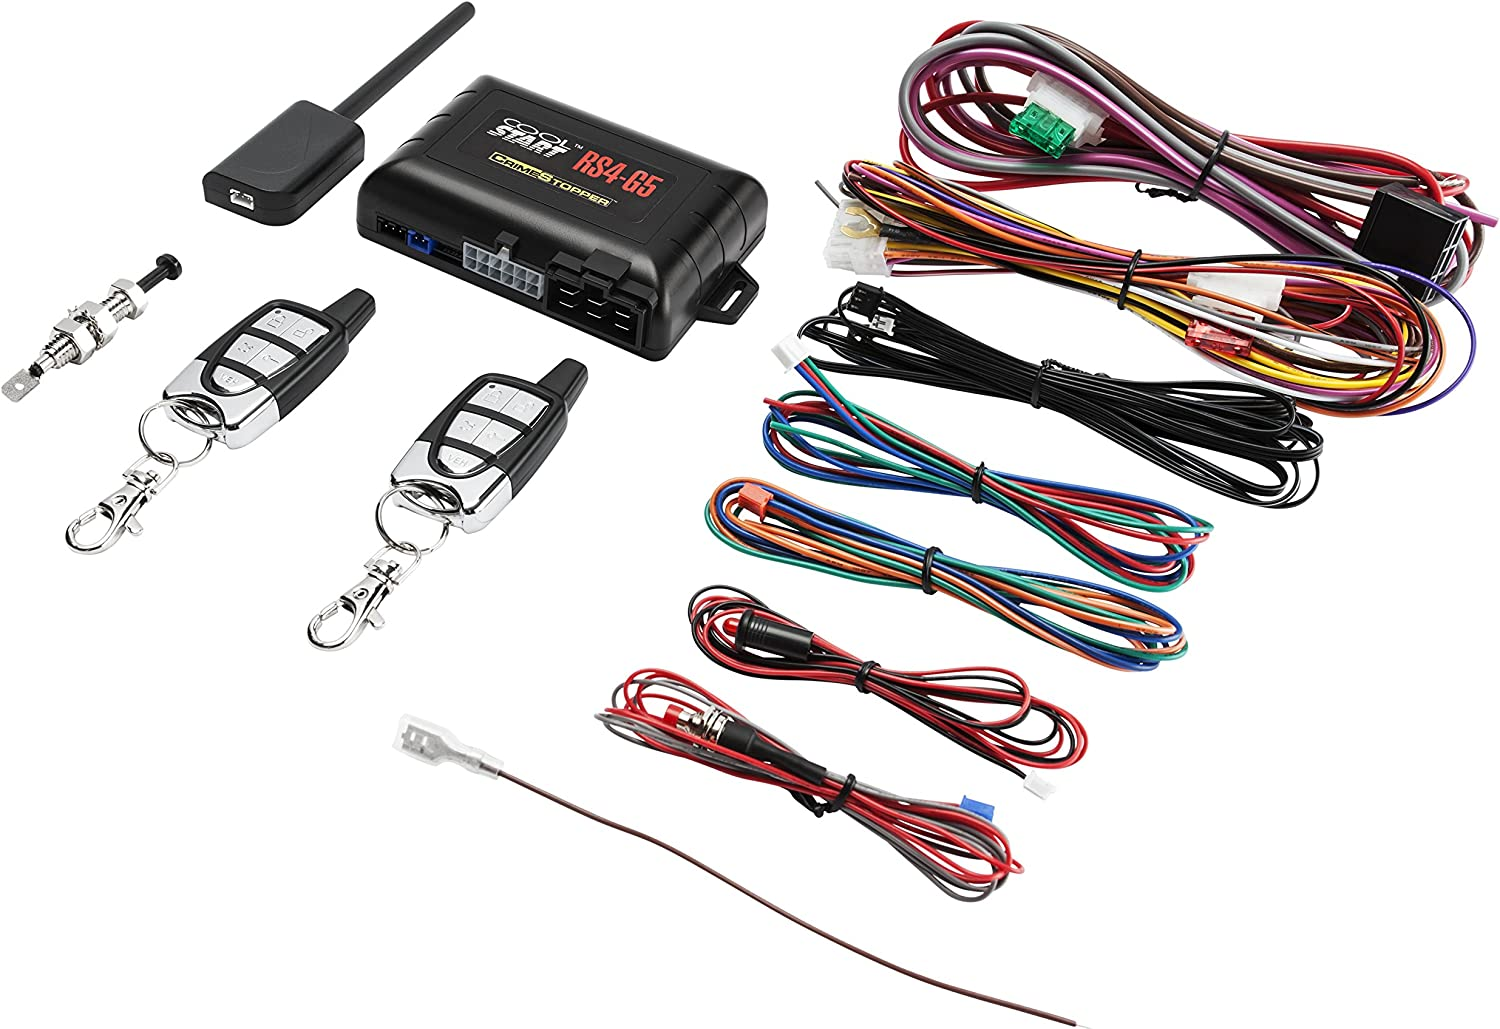 Crimestopper RS4-G5 1-Way Remote Start and Keyless Entry System with Trunk Pop